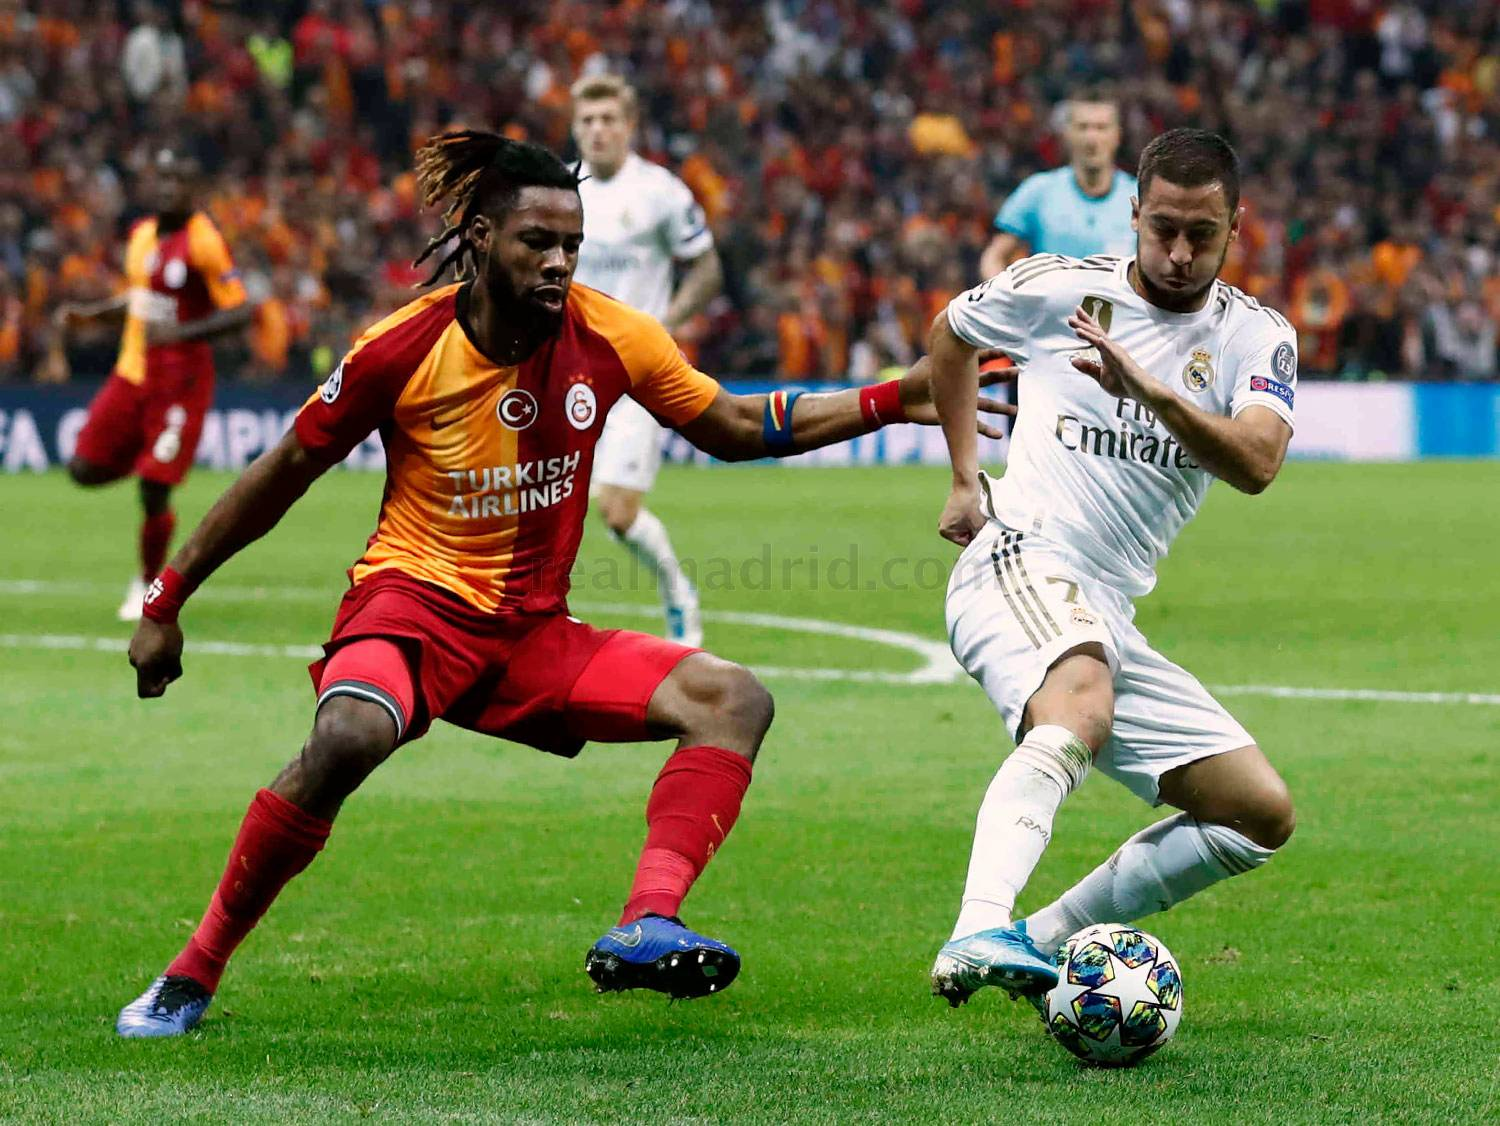 La Previa: Real Madrid-Galatasaray